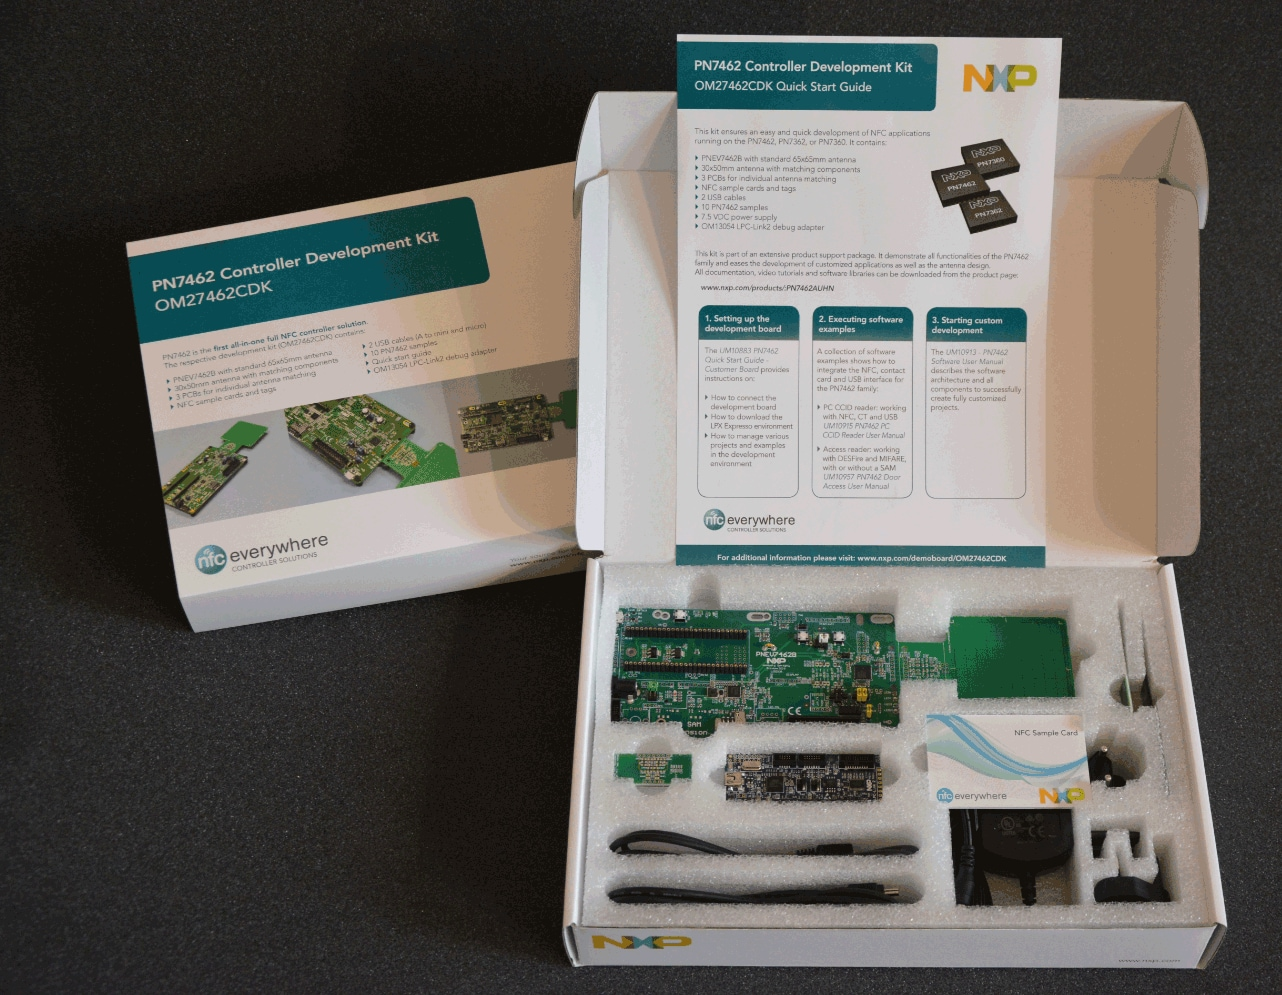 OM27462 | NFC Development Kit for Access Control | NXP